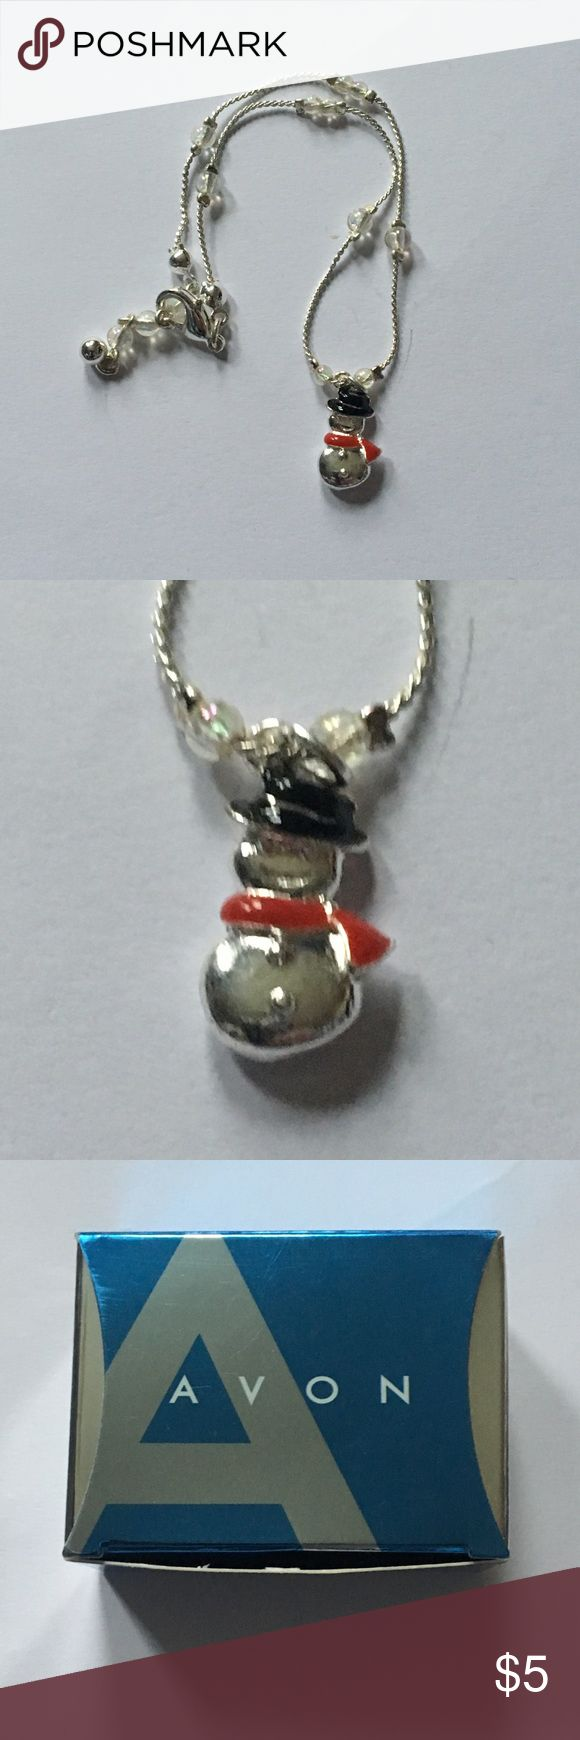 AVON Snowman Holiday Charm Anklet 1 Piece Color(s): Silver, White, Red, Black  Type: Anklet  Brand: Avon  Length: N/A Material(s): String, Silver Plated Metal  Charms/Beads: Snowman  Quality: New in Box  Other Significant Details: None Disclaimer: All measurements are APPROXIMATE and to the nearest inch. All flaws of the item(s) is disclosed. I will not accept any lowball offers. Tags: Christmas holiday holidays snow winter cute lady woman snowmen adorable xmas December January ankle…